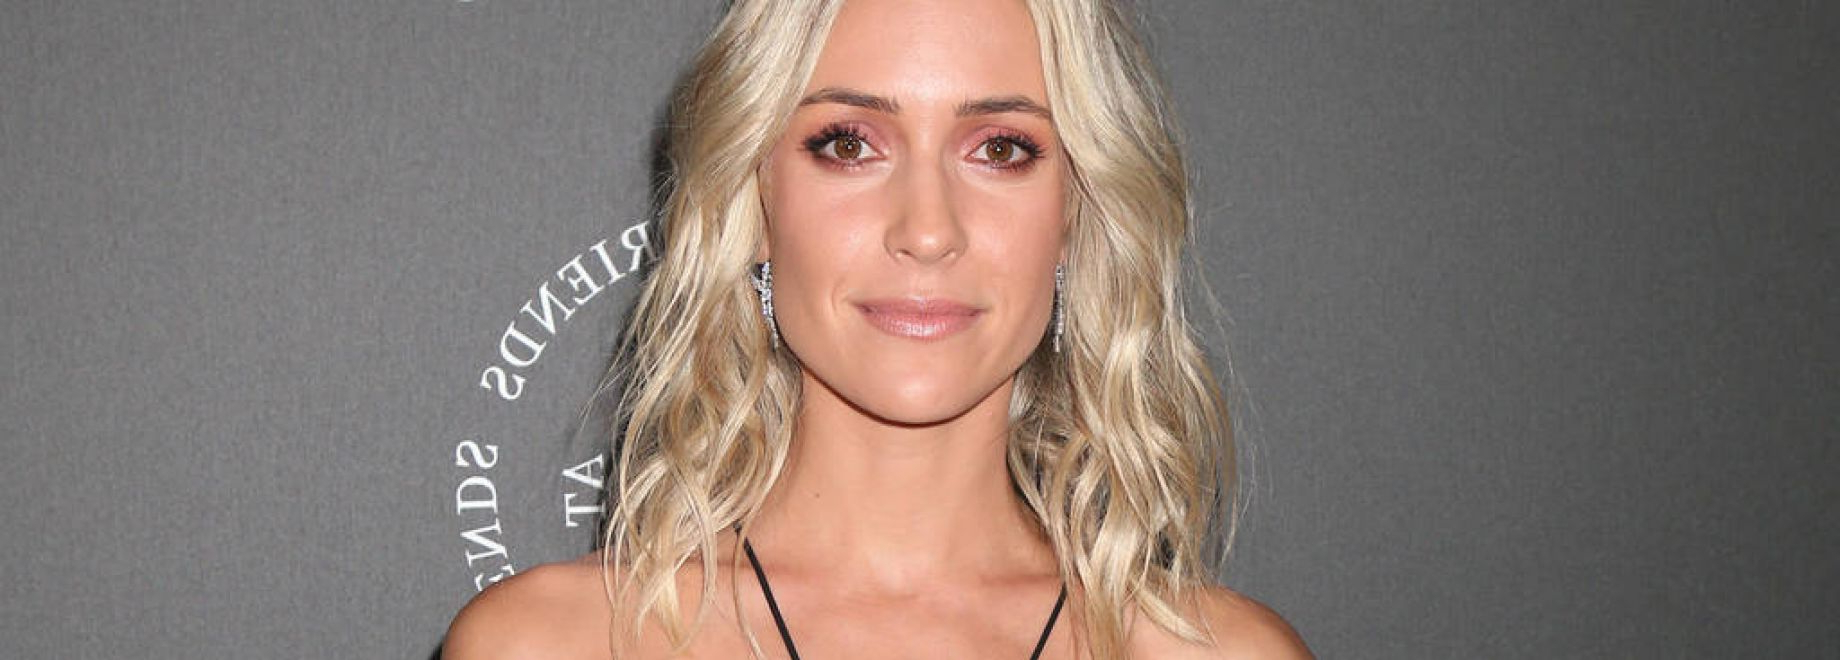 Kristin Cavallari Reduced To Tearsbrother's Message (Gallery 19 of 20)